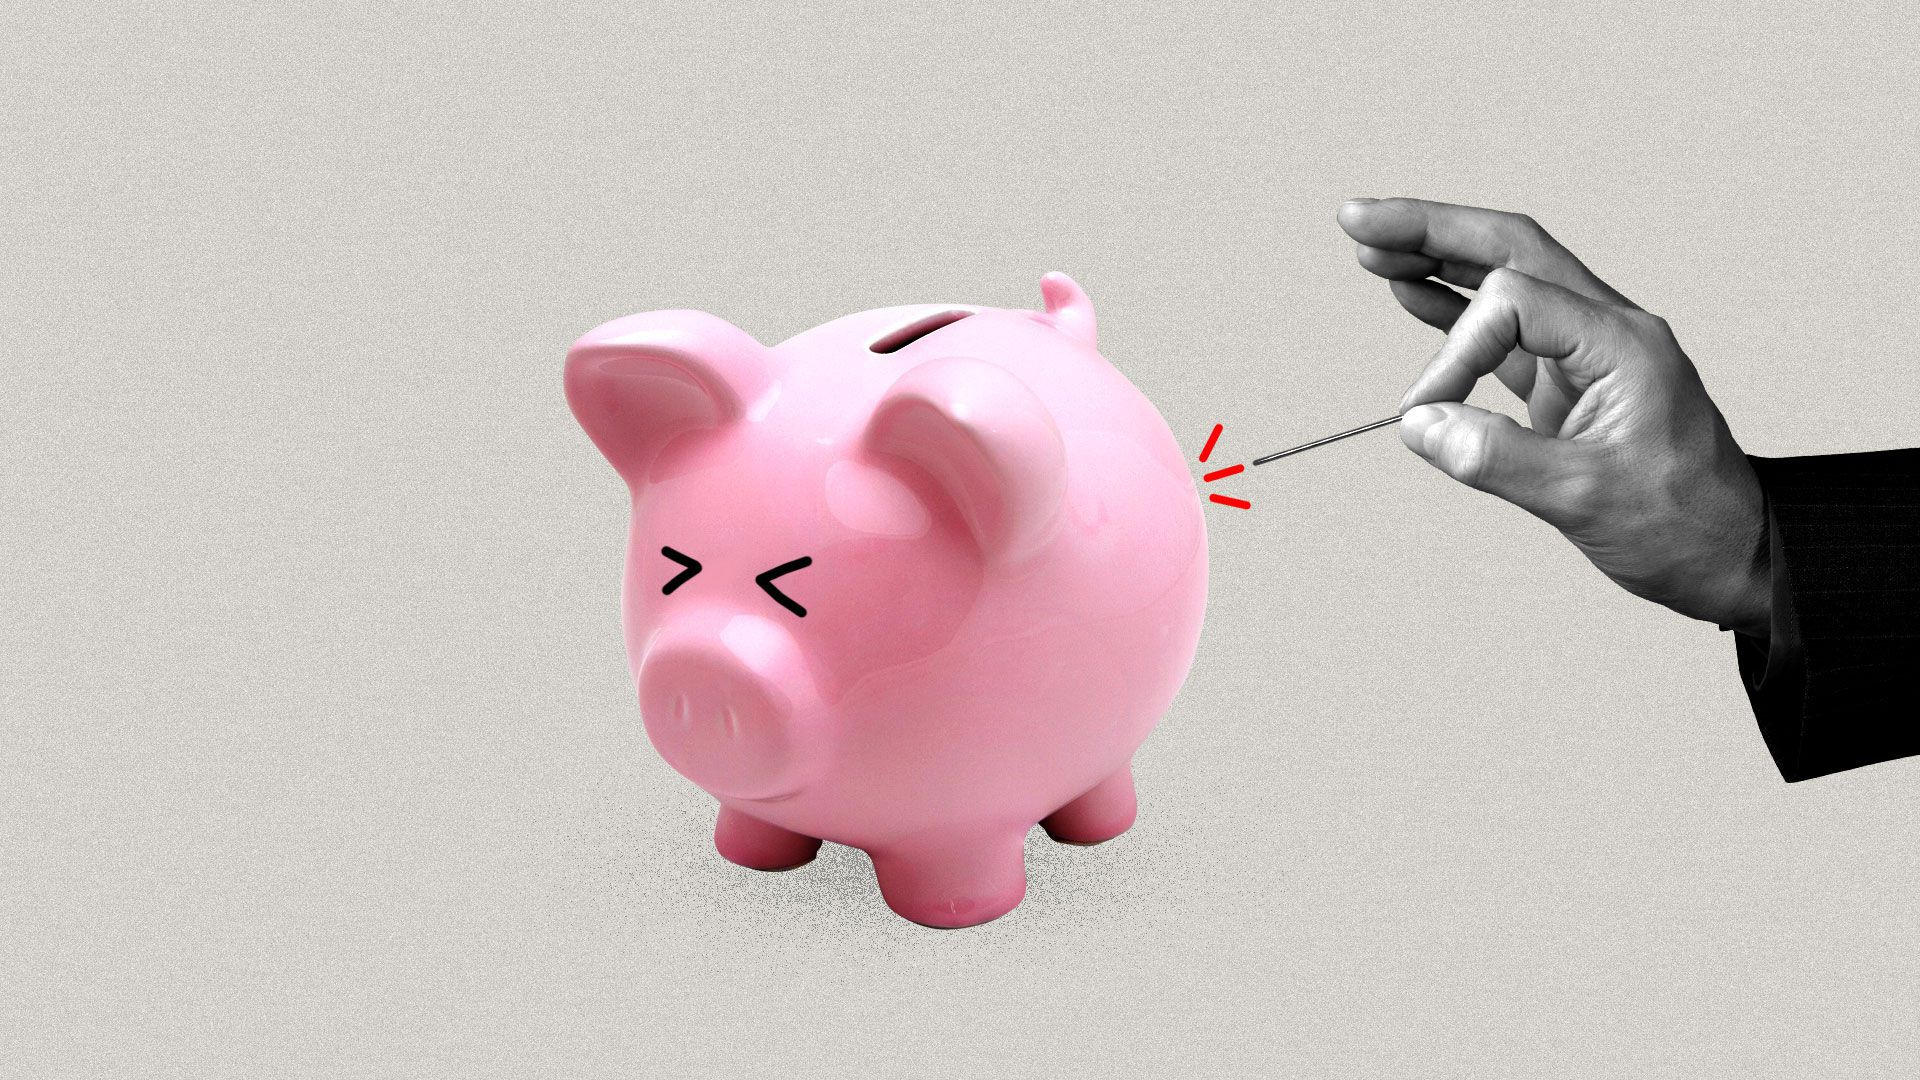 A hand with a pin poking a piggy bank